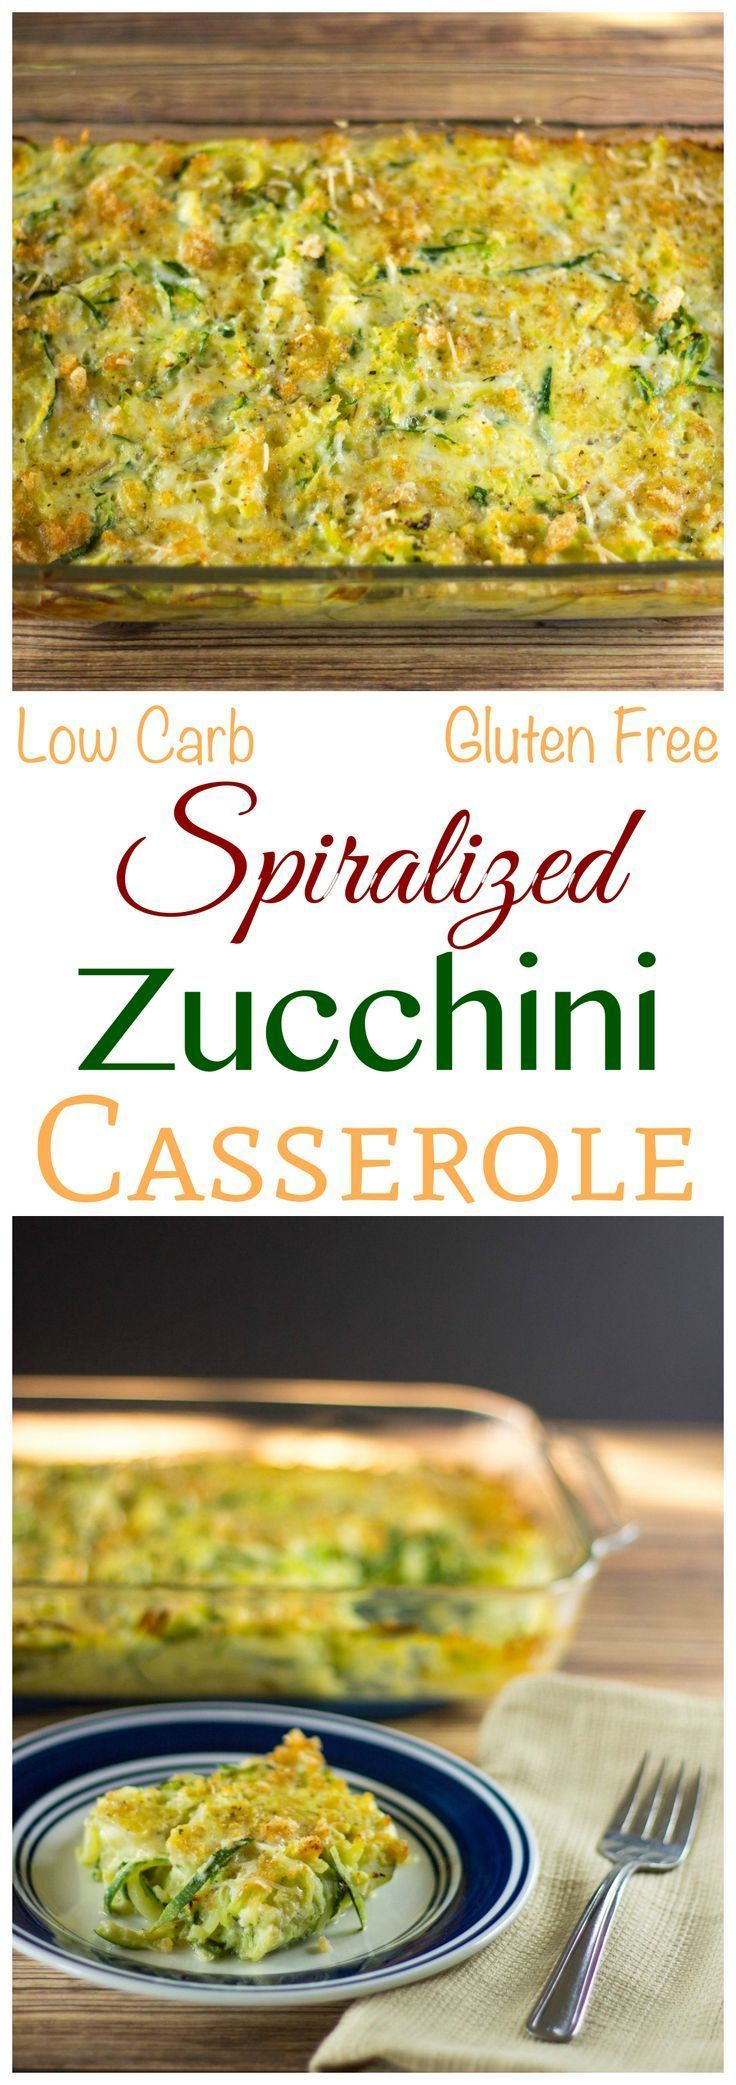 this tasty low carb spiralized zucchini casserole as a side dish for a main meal or brunch. It's got an egg base and a crunchy gluten free topping.